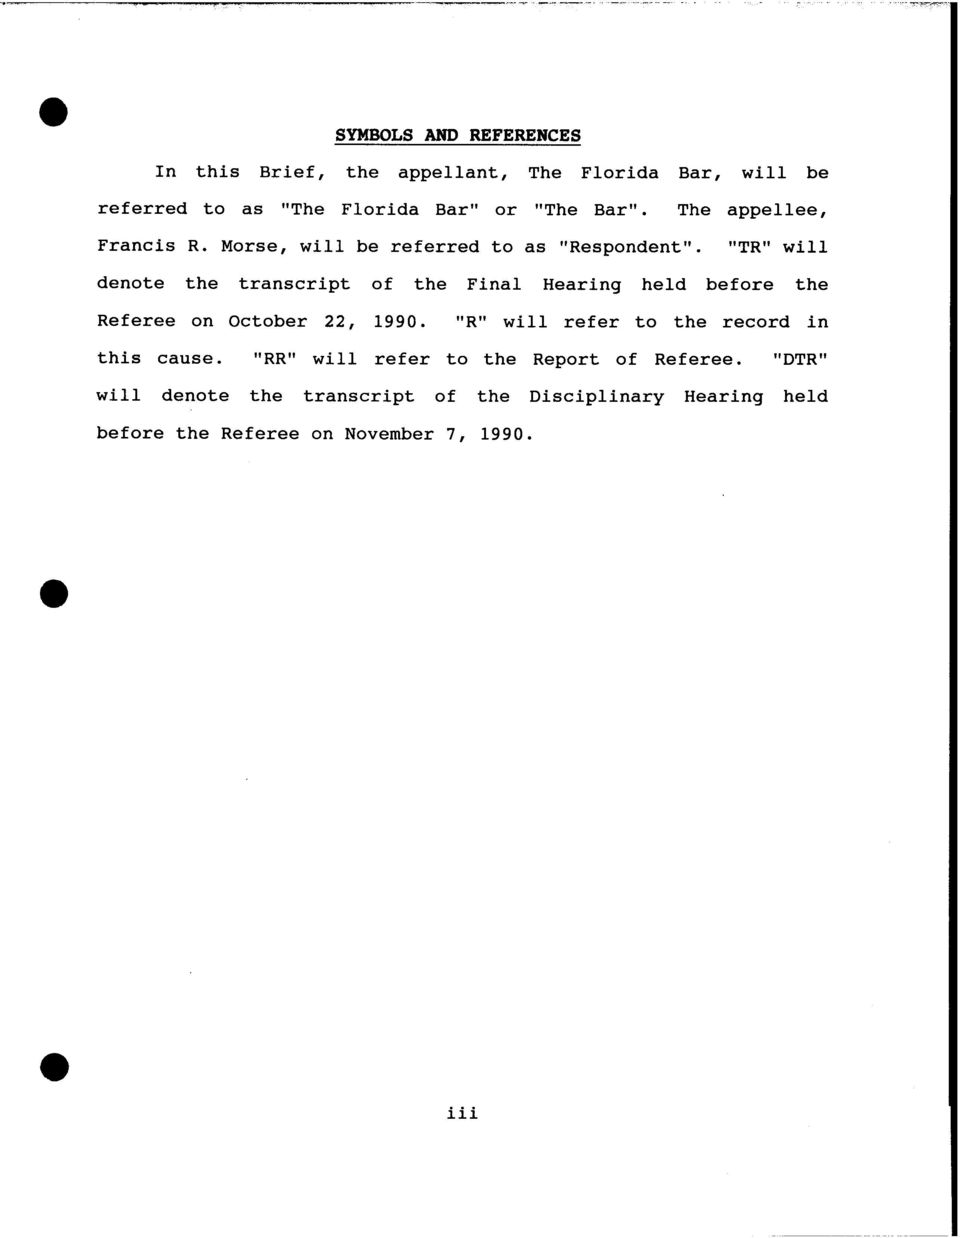 """TR"" will denote the transcript of the Final Hearing held before the Referee on October 22, 1990."